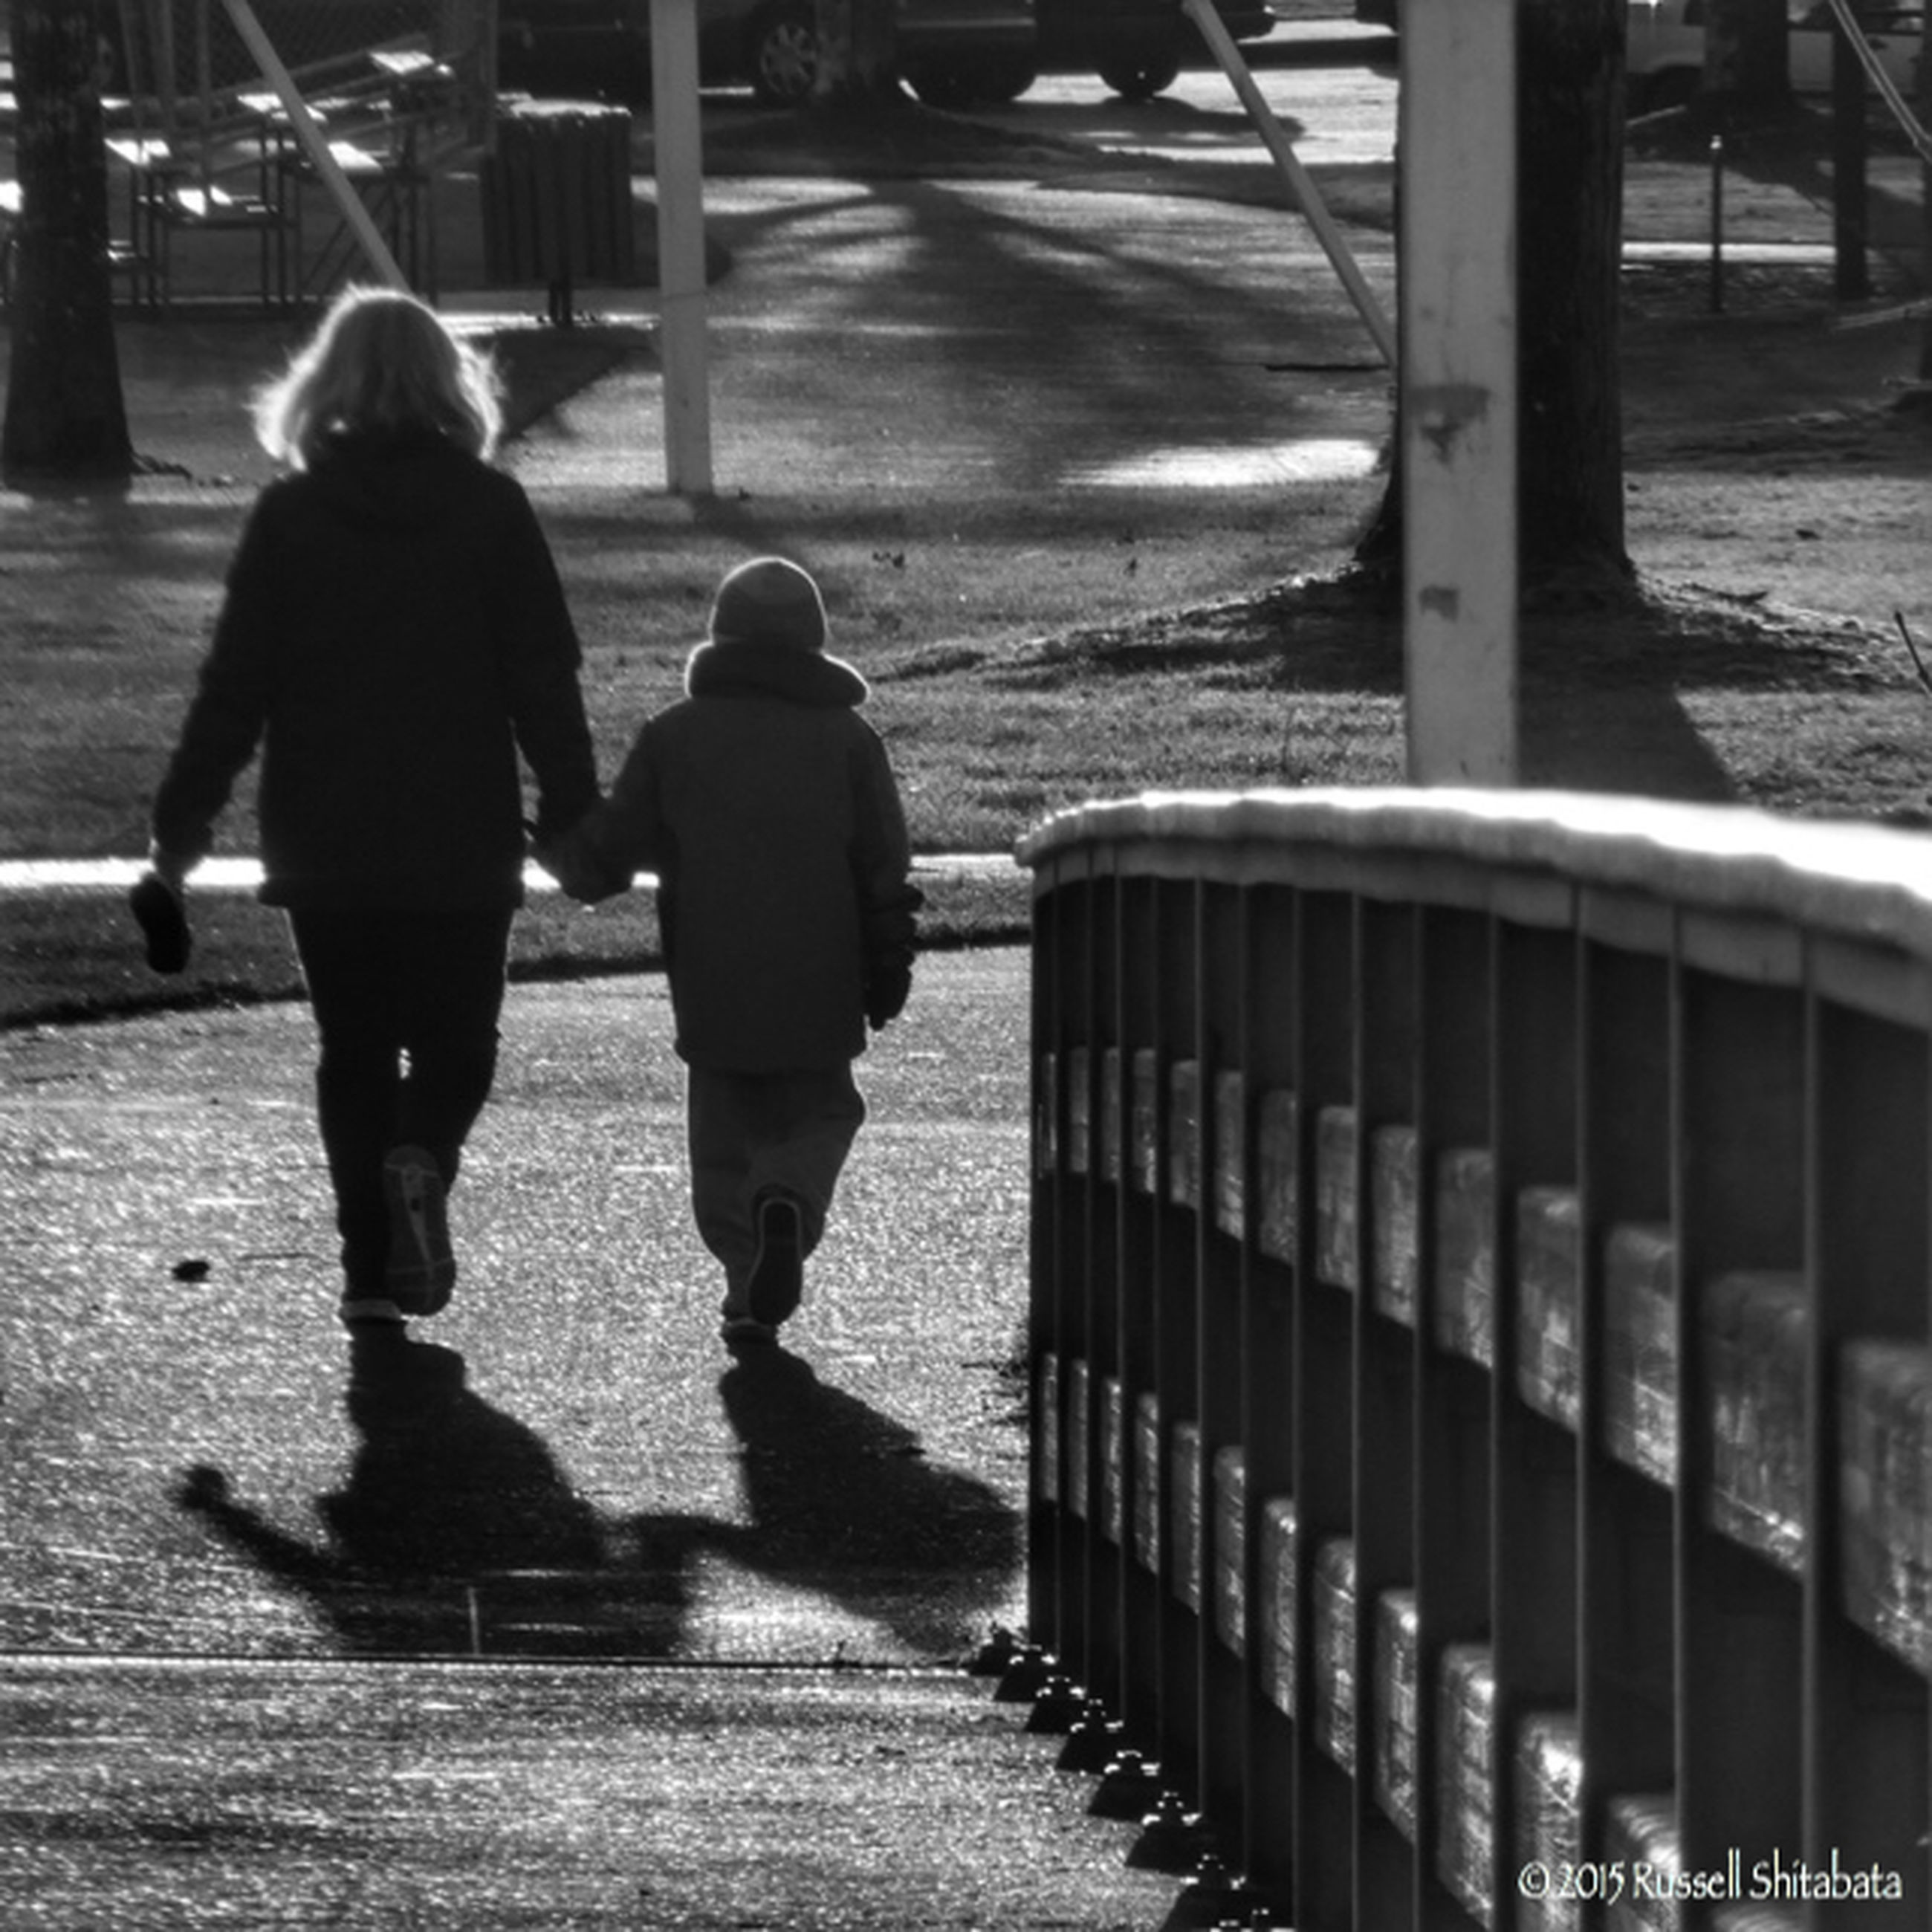 lifestyles, walking, rear view, full length, men, leisure activity, street, person, casual clothing, city, city life, togetherness, shadow, sidewalk, sunlight, standing, footpath